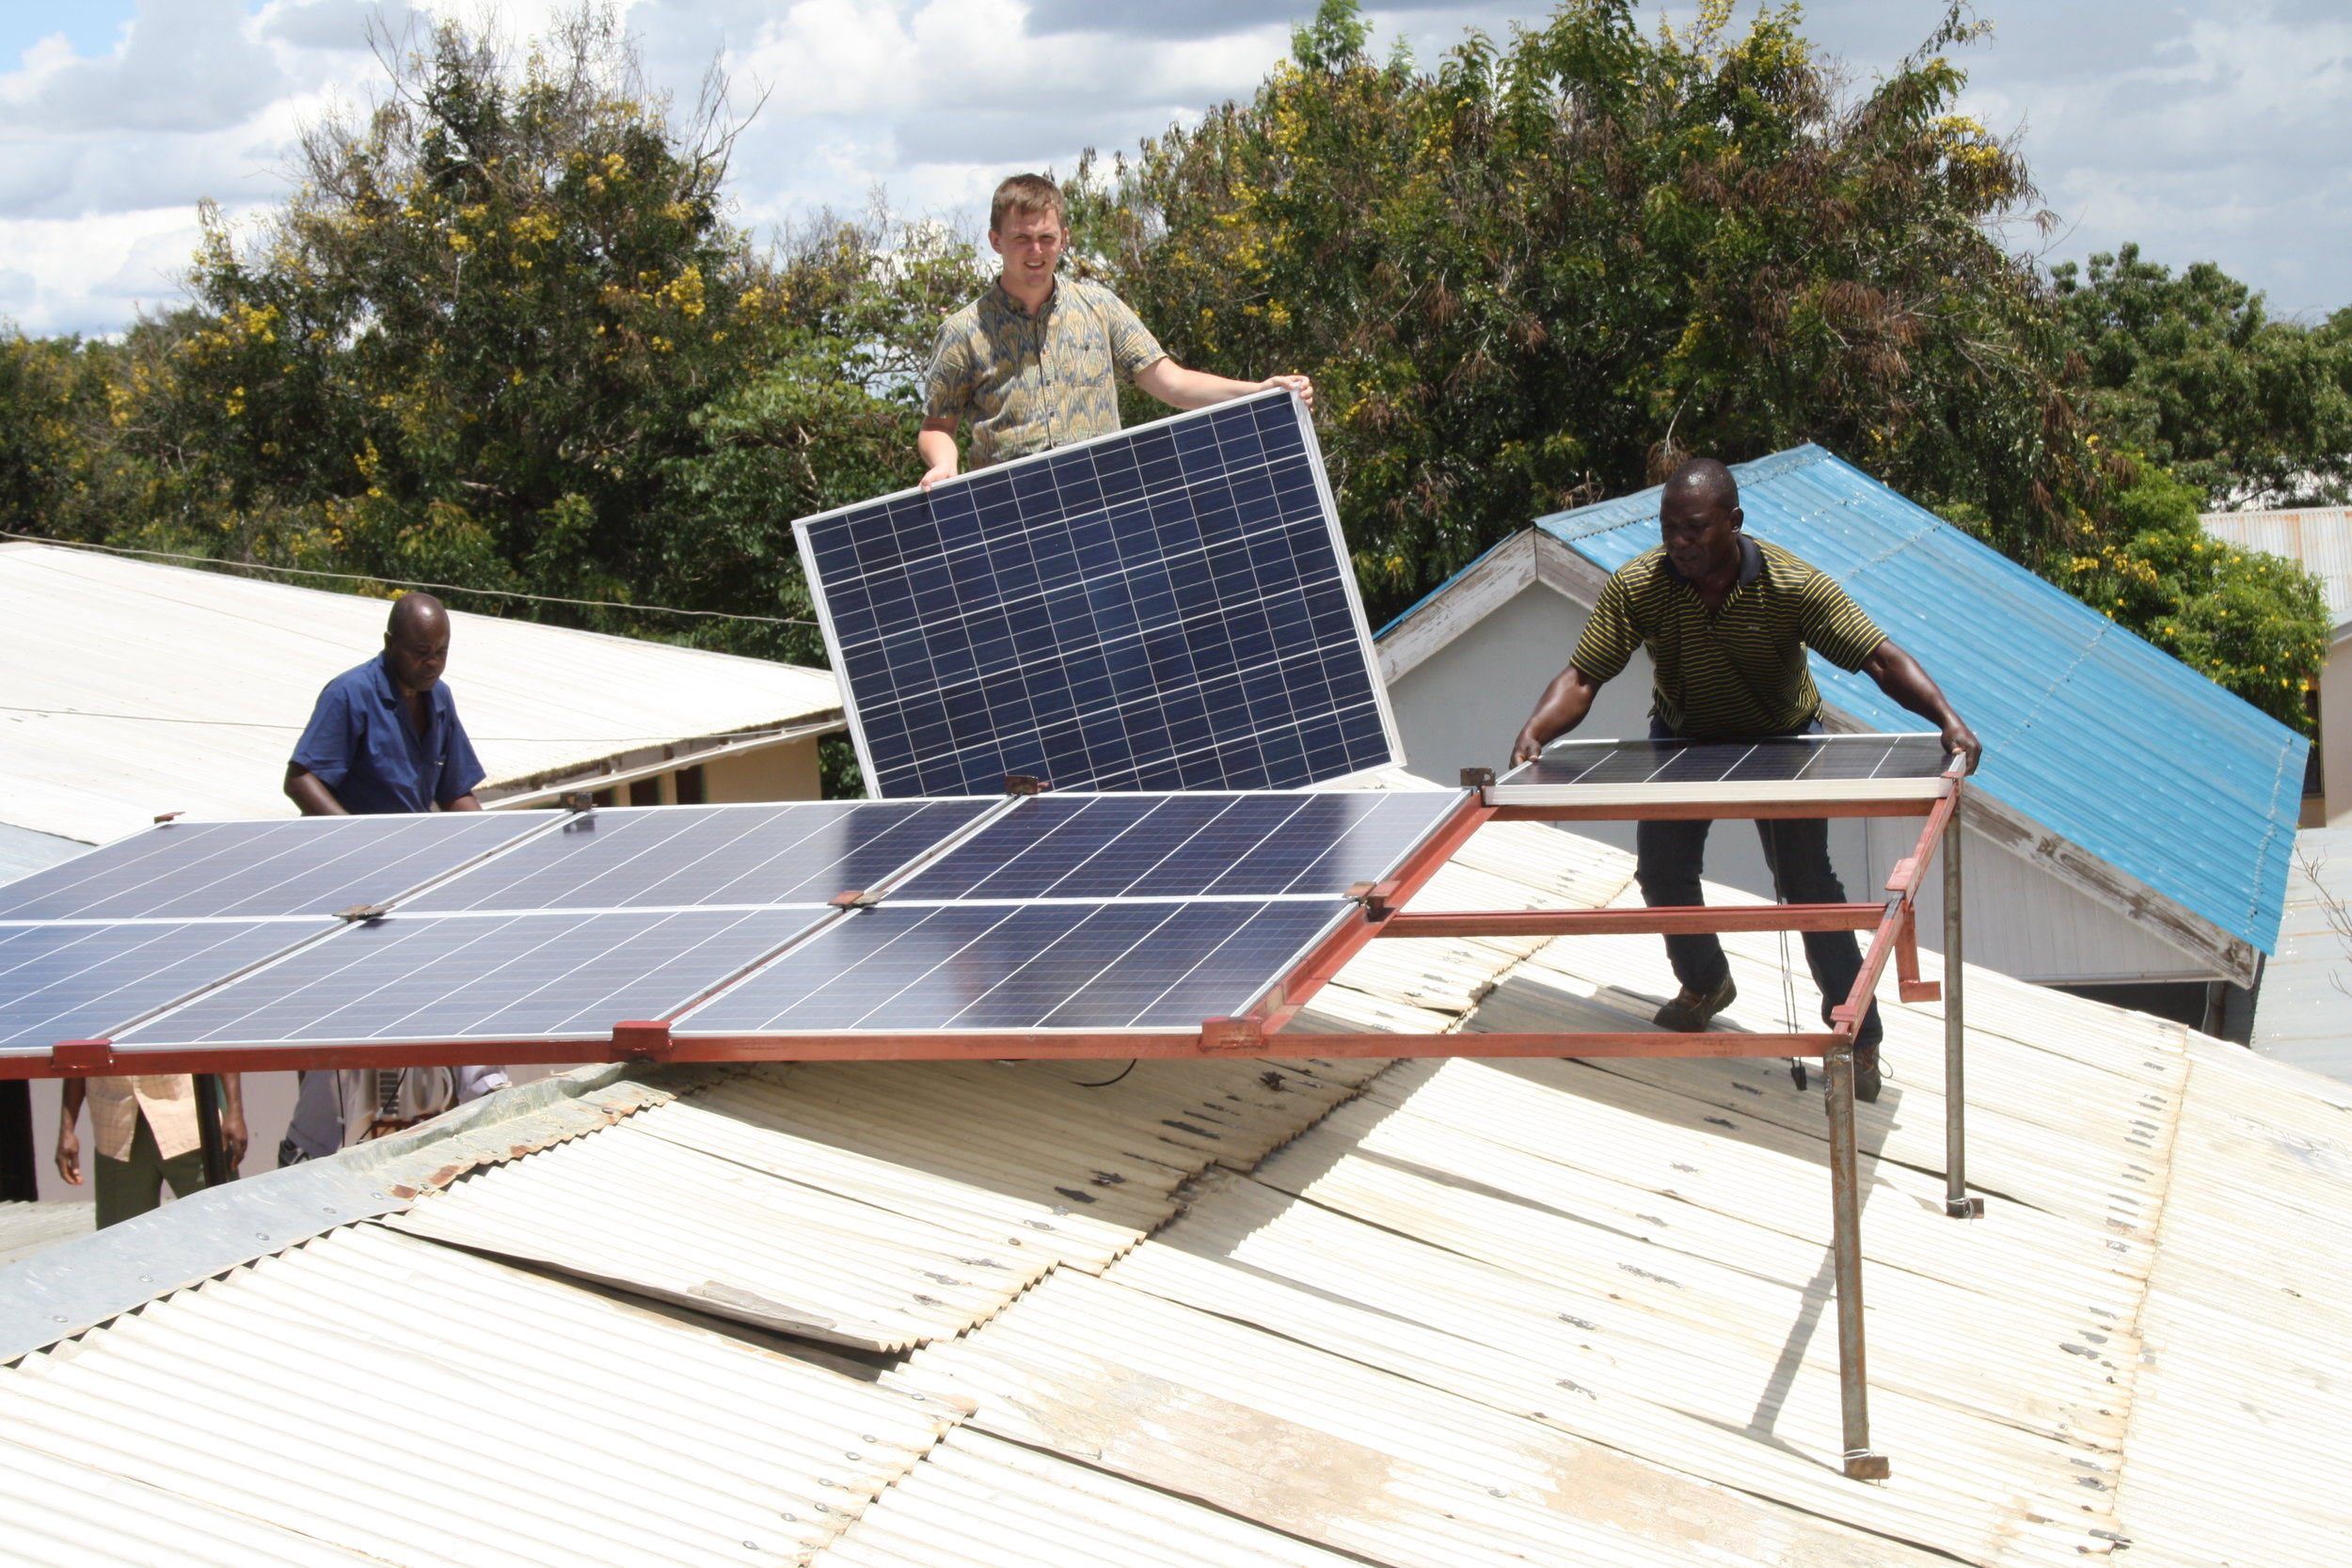 Installation of solar cells on a roof